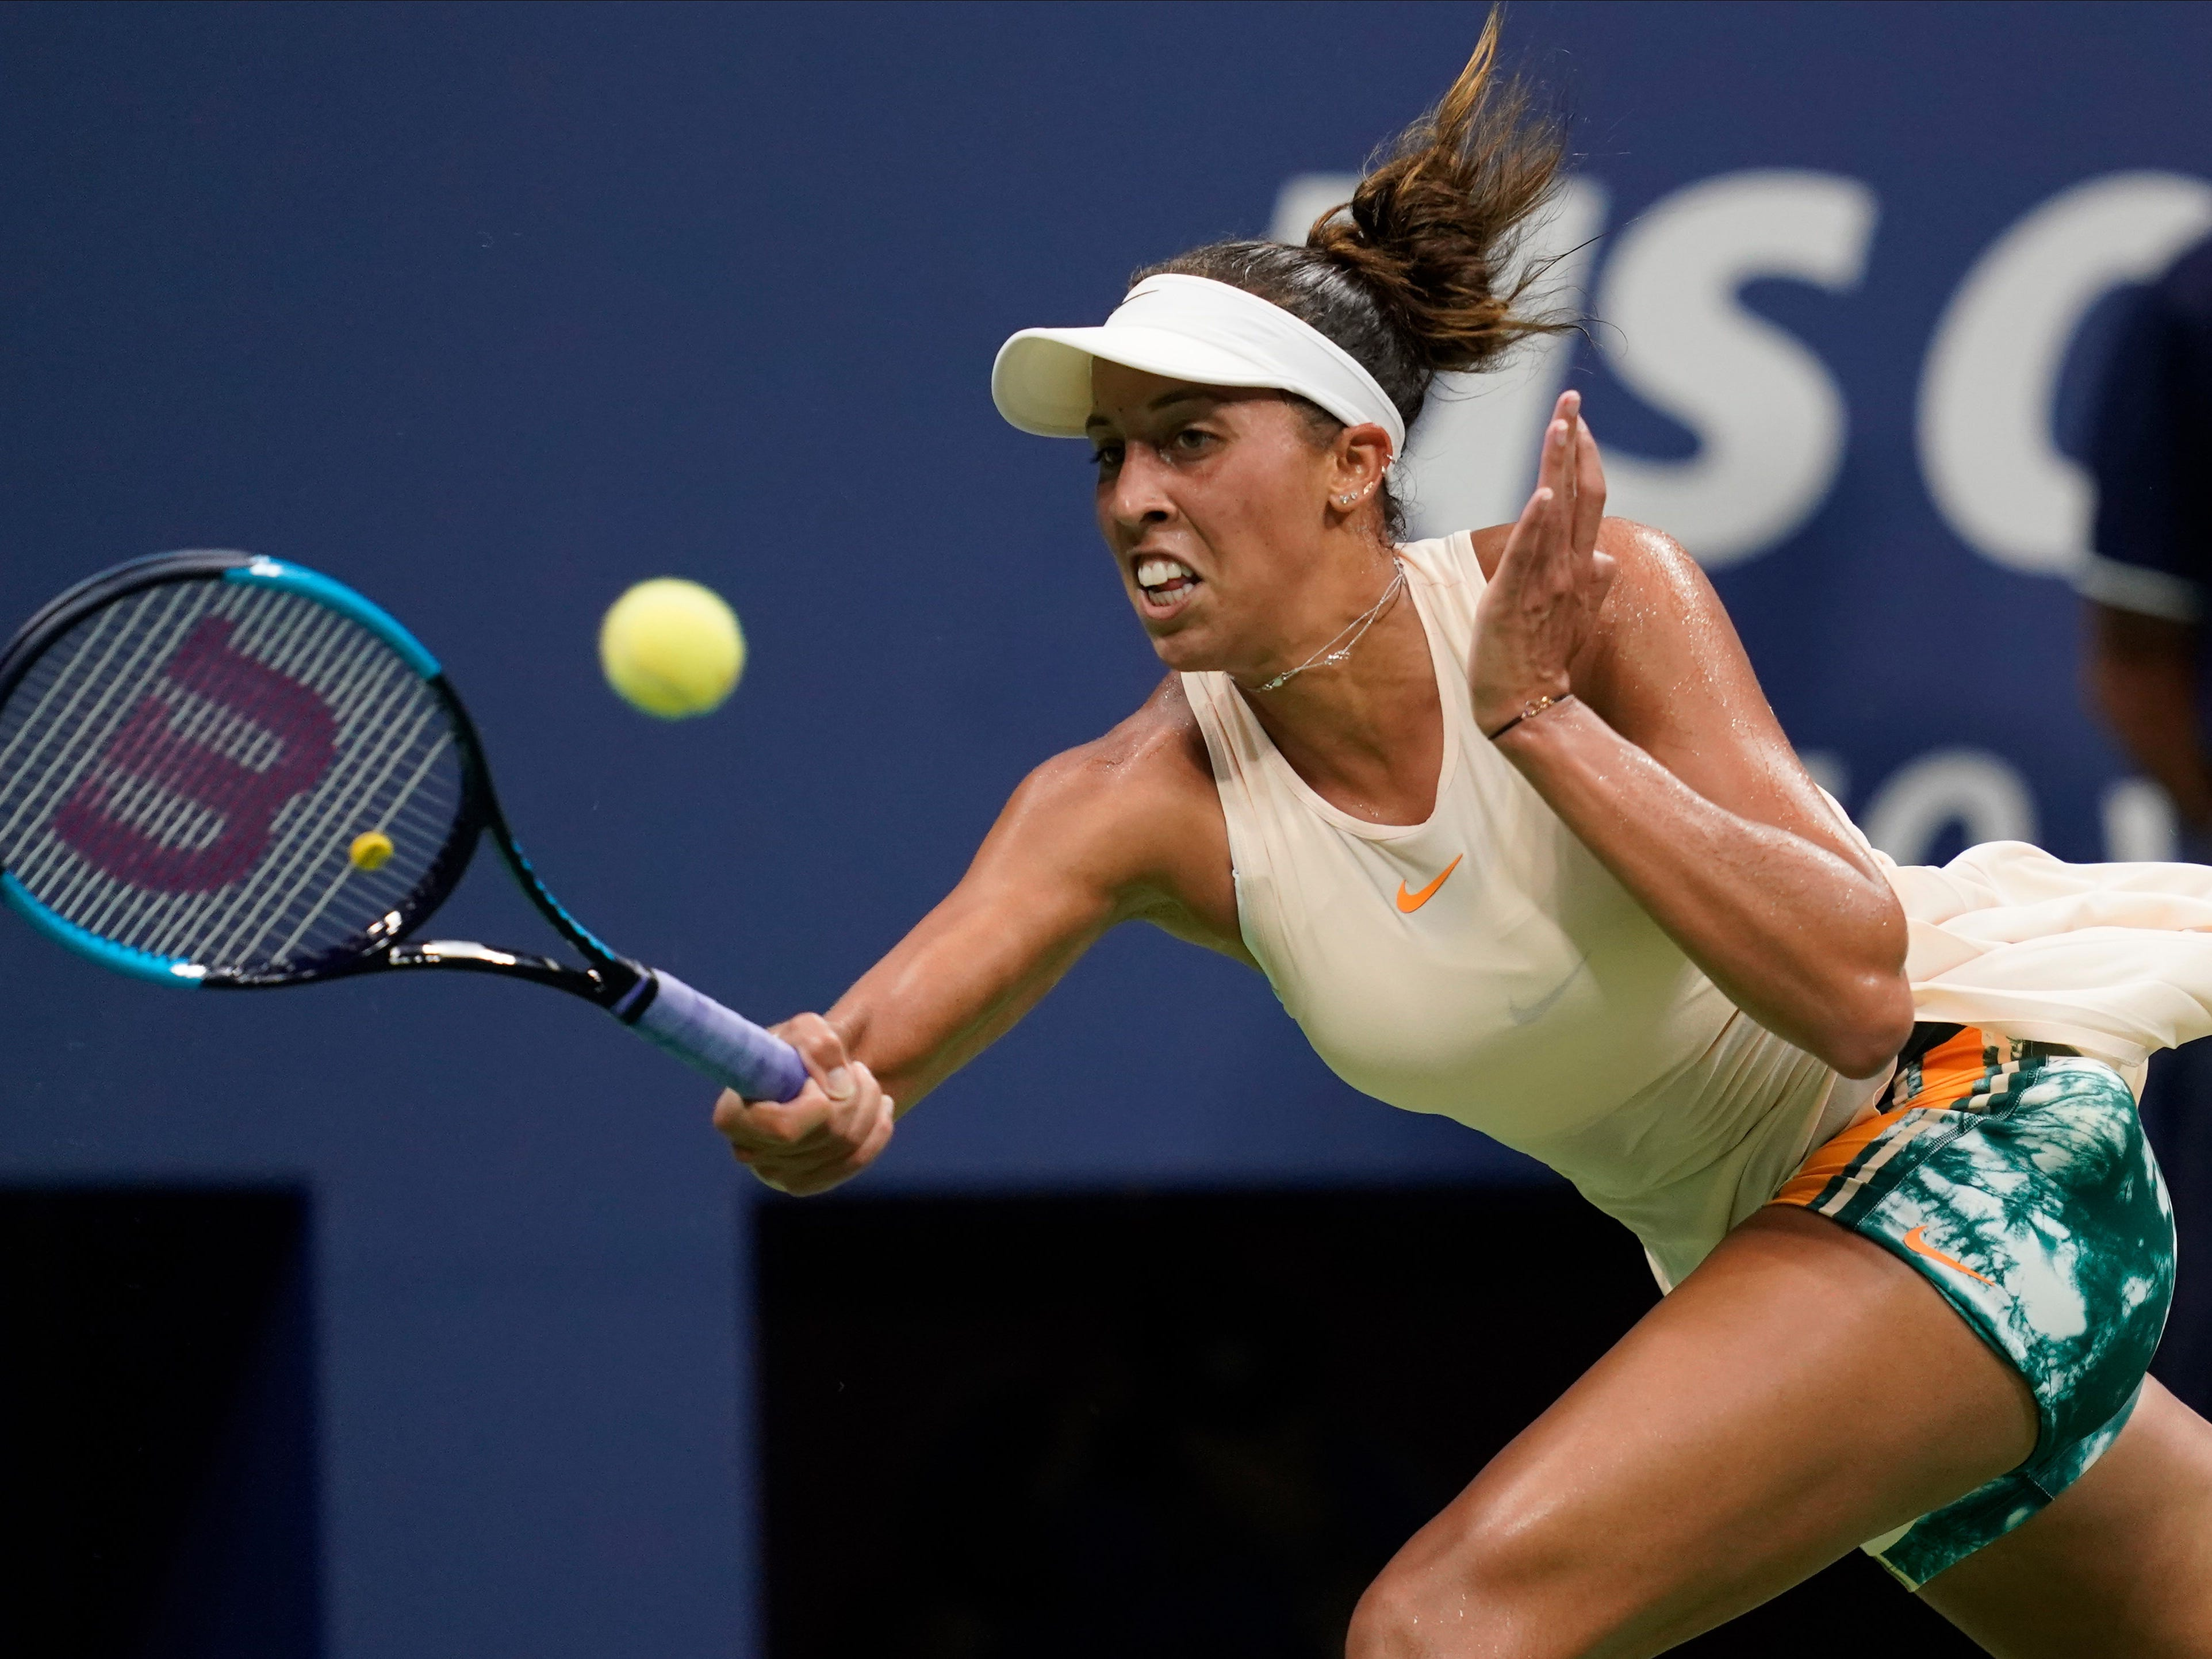 Madison Keys, chasing down a forehand during her match with Carla Suarez Navarro, advanced to the semifinals for the second consecutive year.